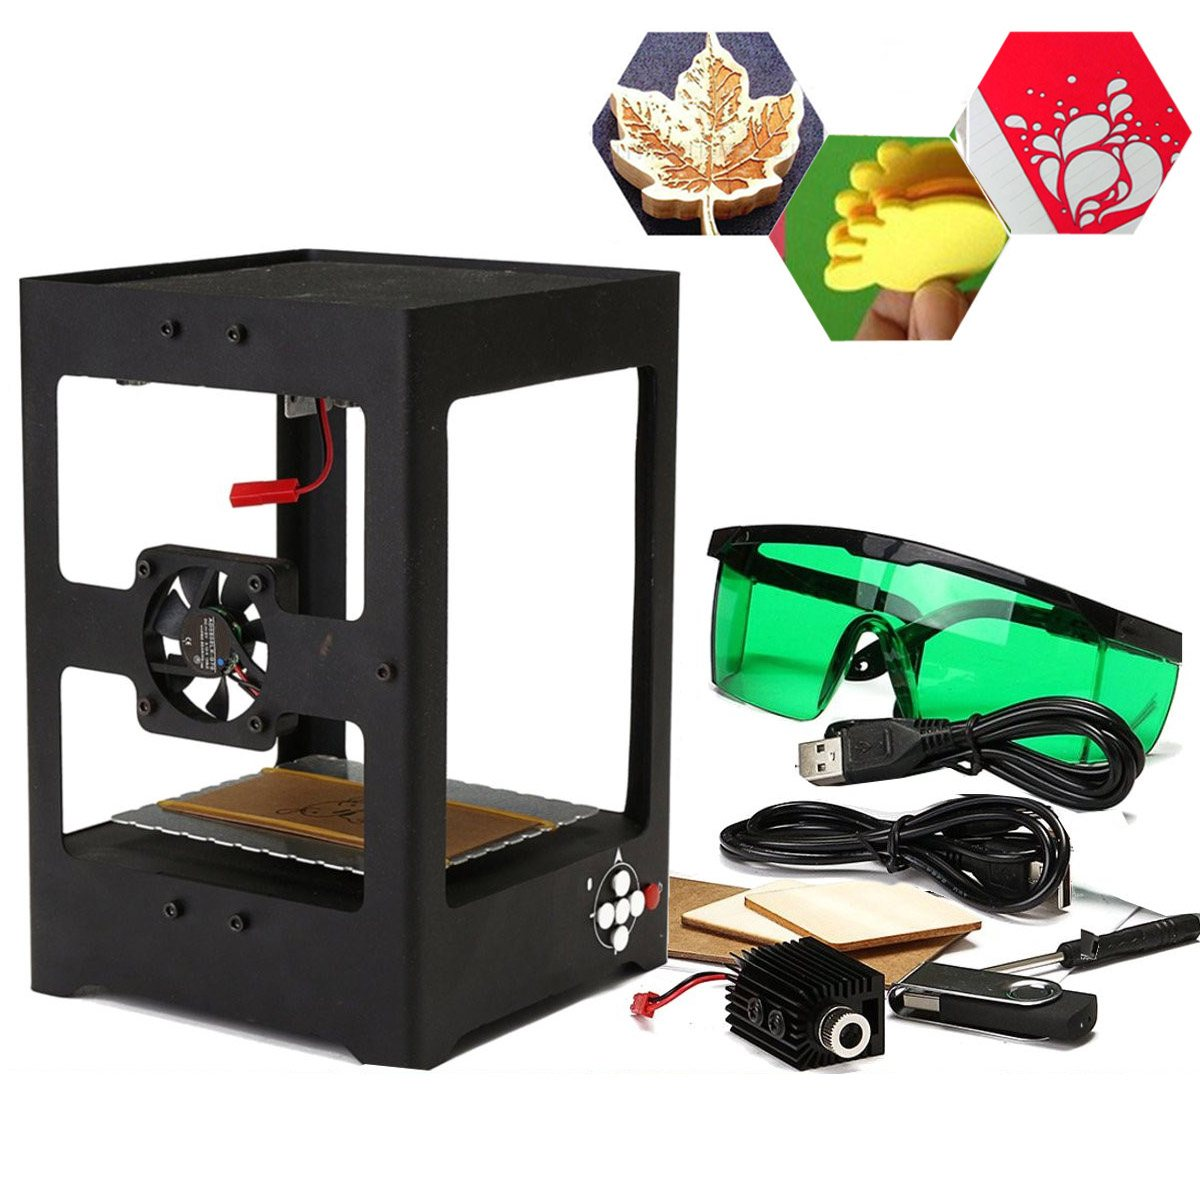 1000mW CNC USB Blue Purple Laser Engraver Printer Cutter Carver Mini DIY Engraving Machine High Speed with Protective Glasses